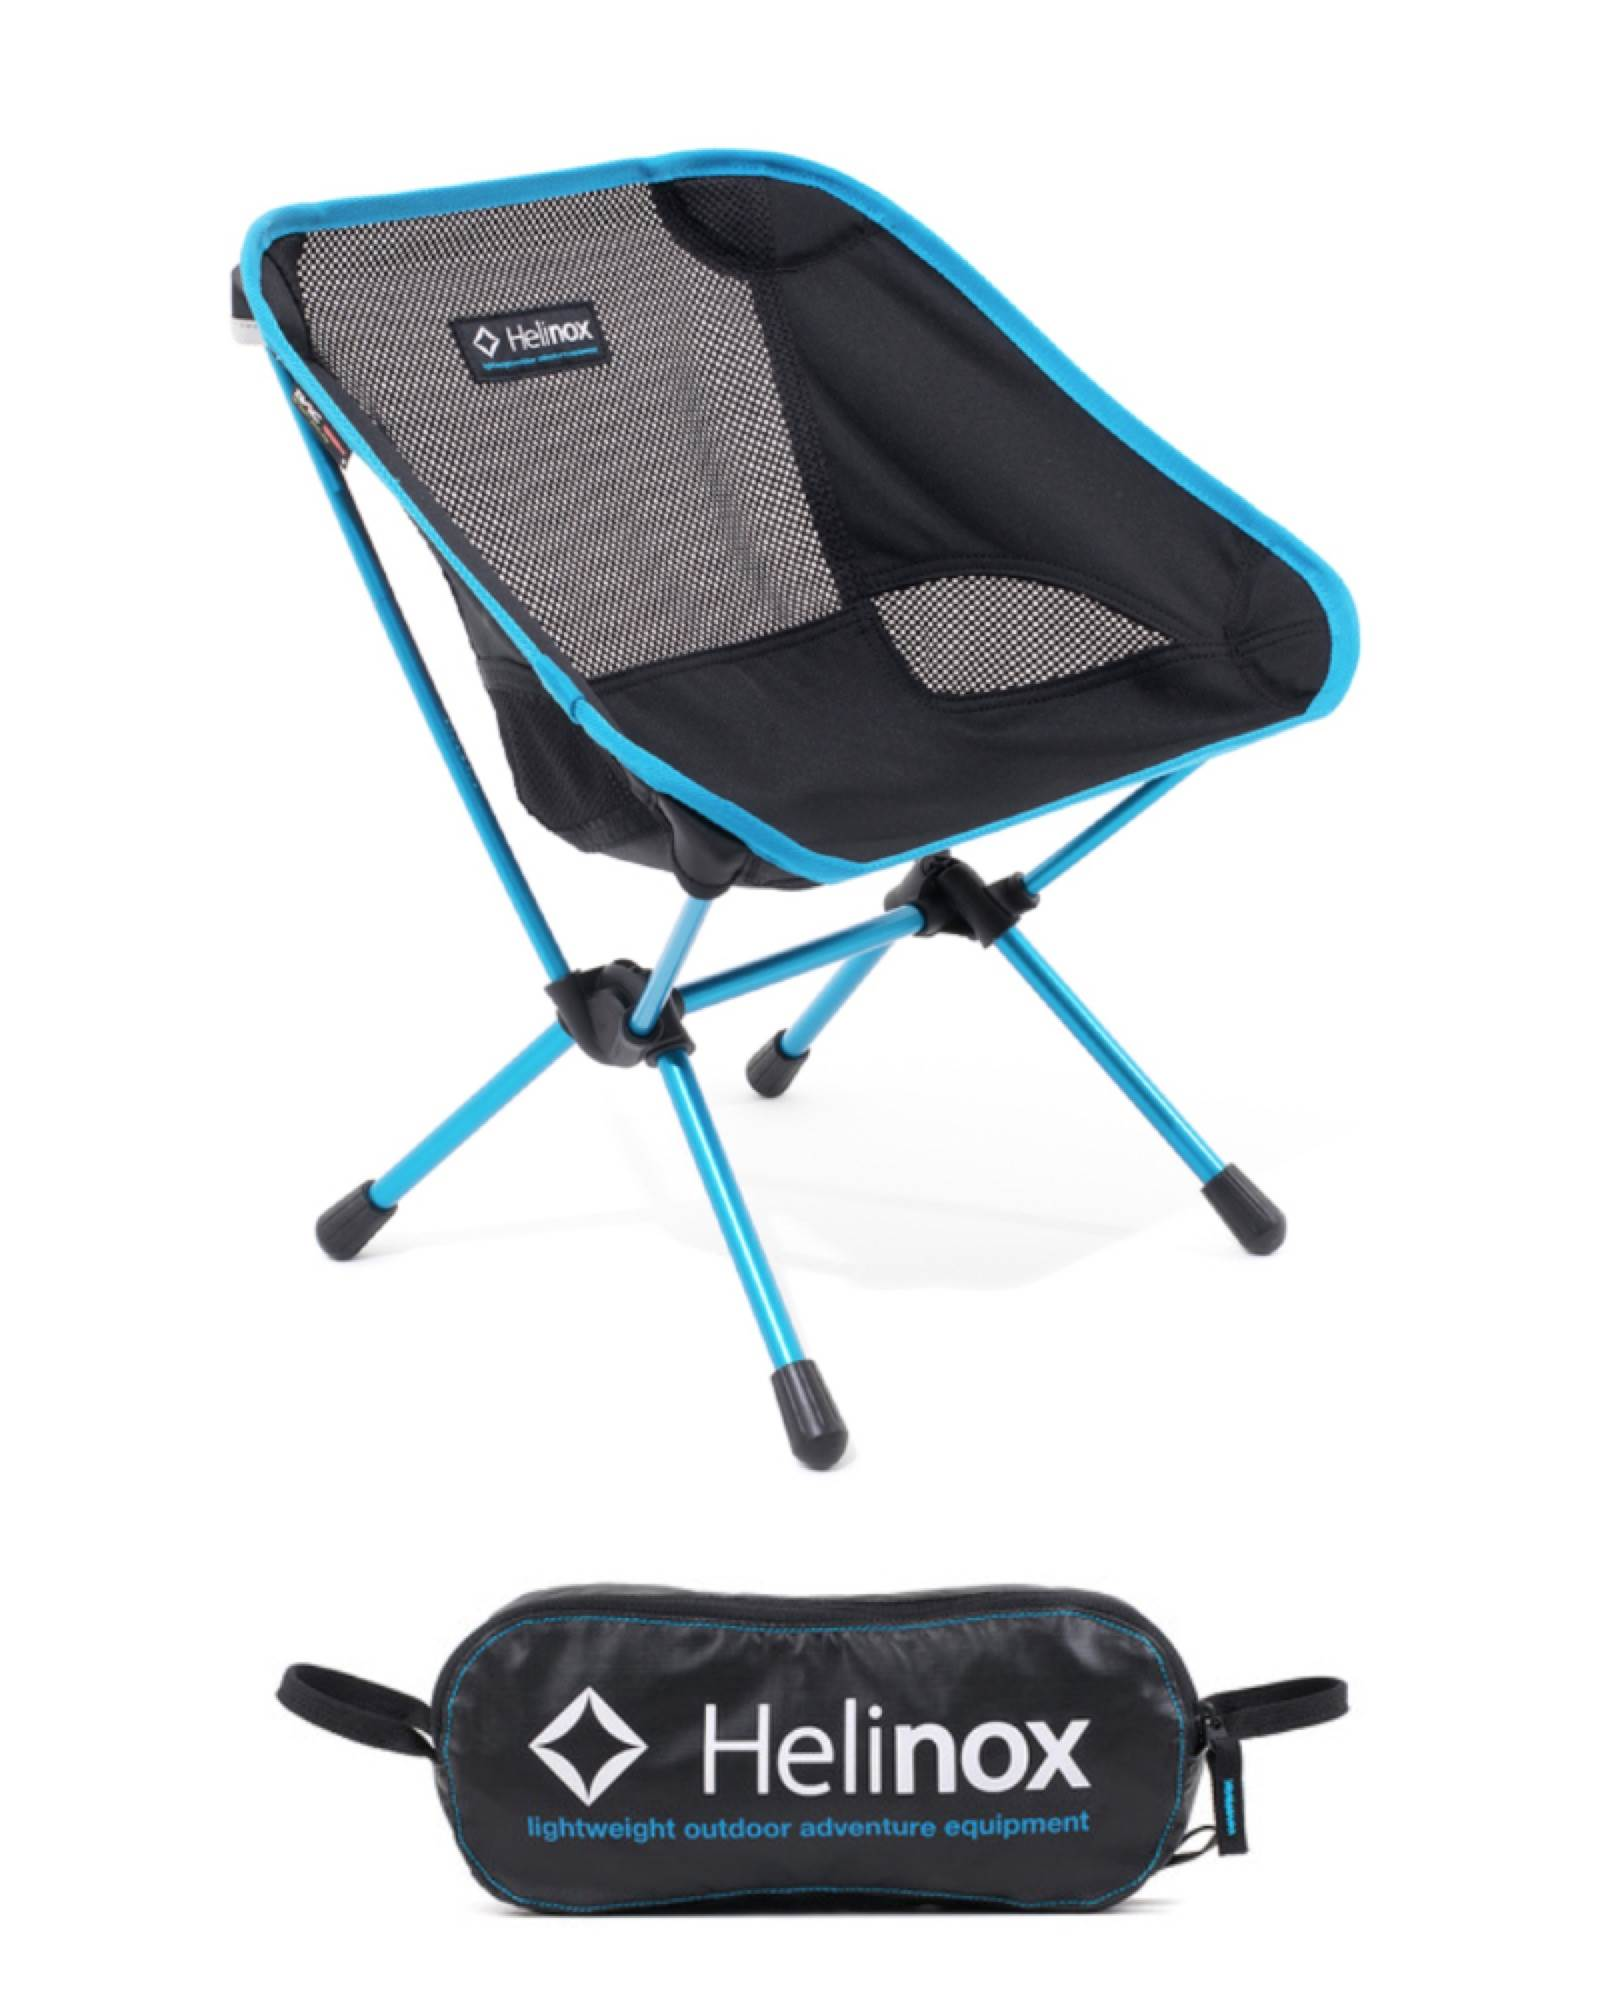 Chair One Mini - Lightweight Kids C&ing Chair - Black / Cyan  sc 1 st  Travel Universe & Helinox Chair One Mini - Lightweight Kids Camping Chair - Black ...